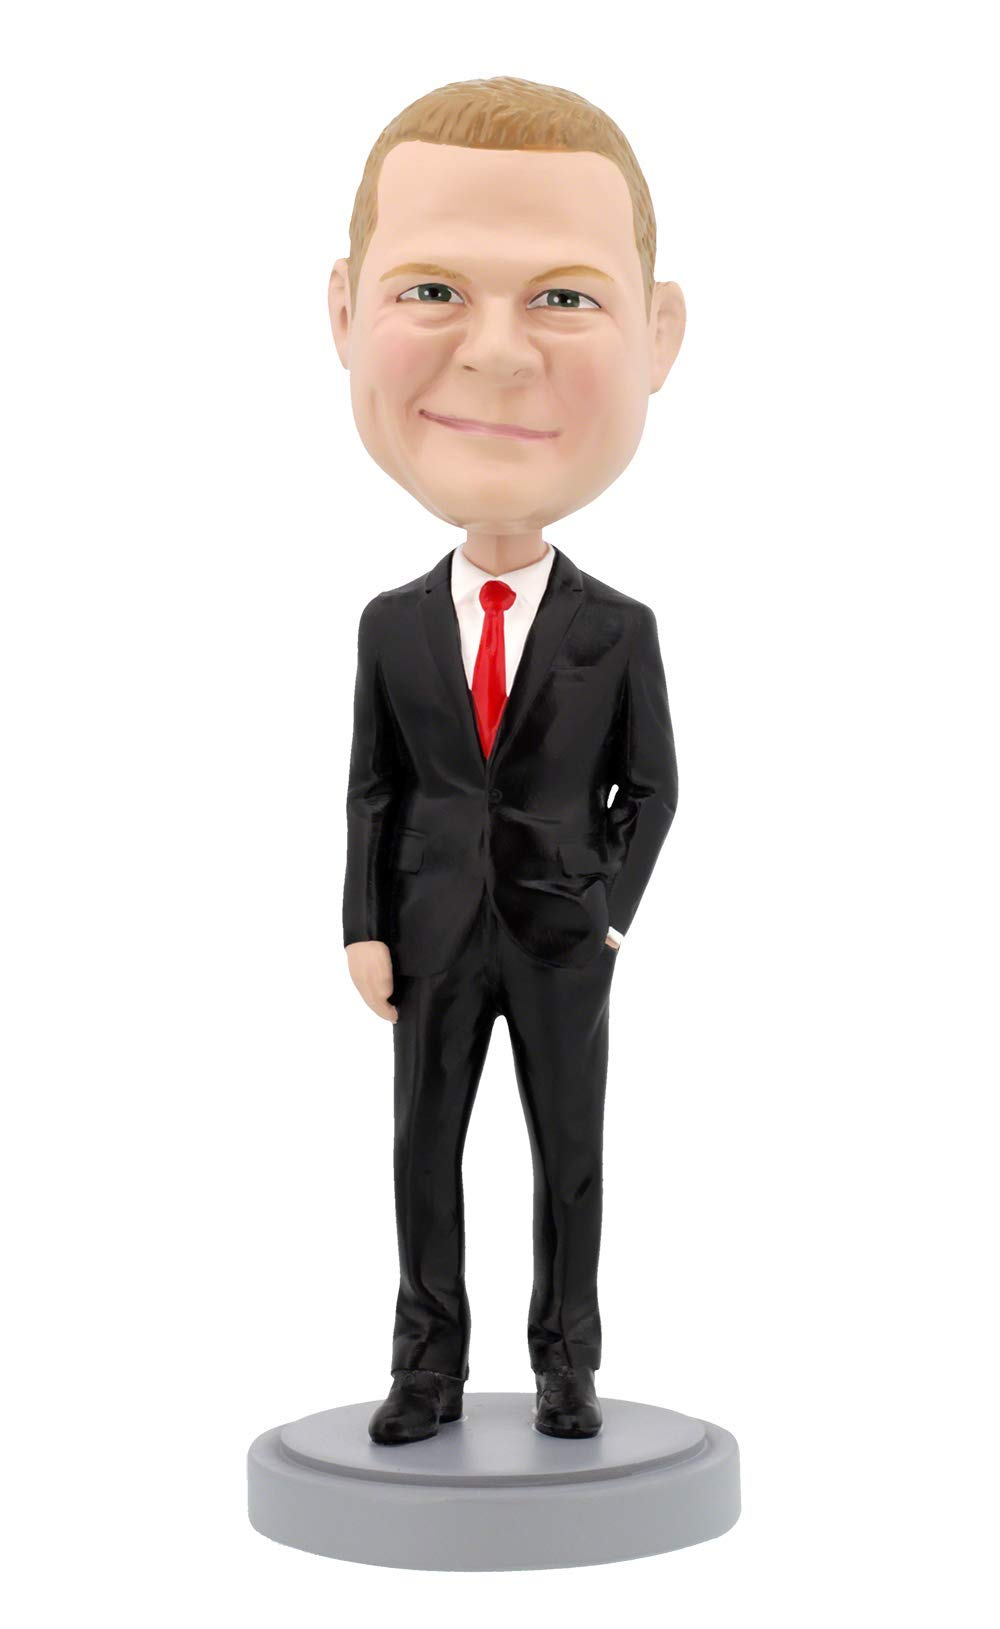 Custom Bobbleheads - Male Executive in Power Suit Body - Personalized Gifts